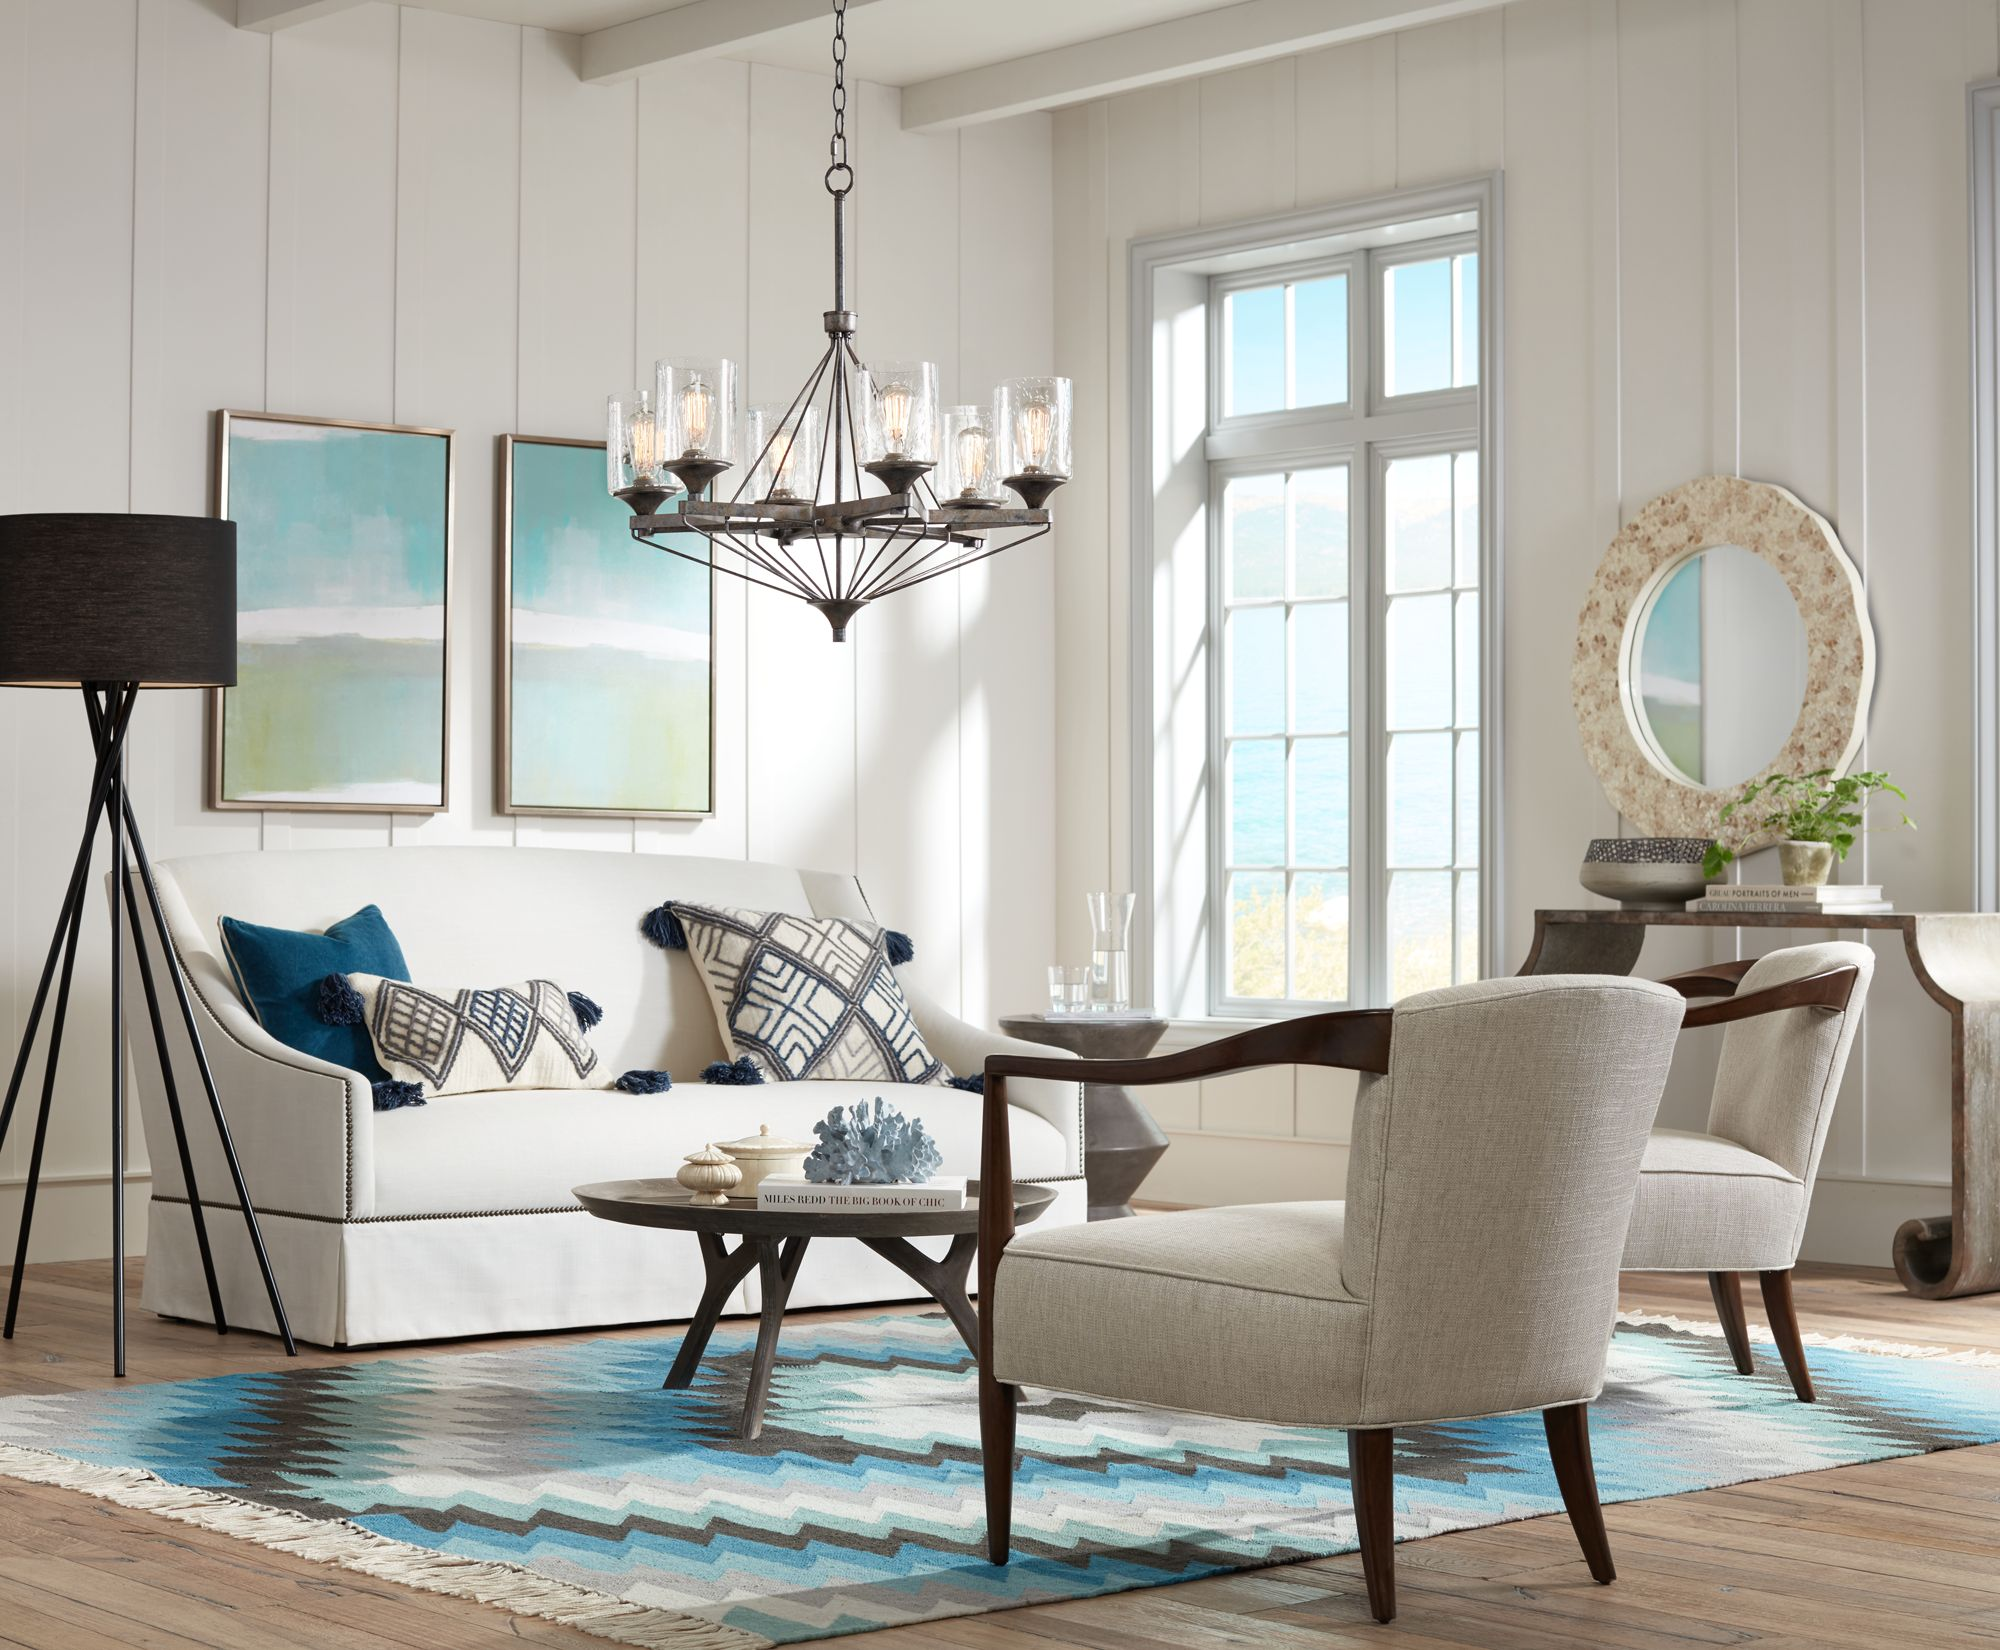 Pops Of Blue Add Color To This Mid Century Styled Living Room.